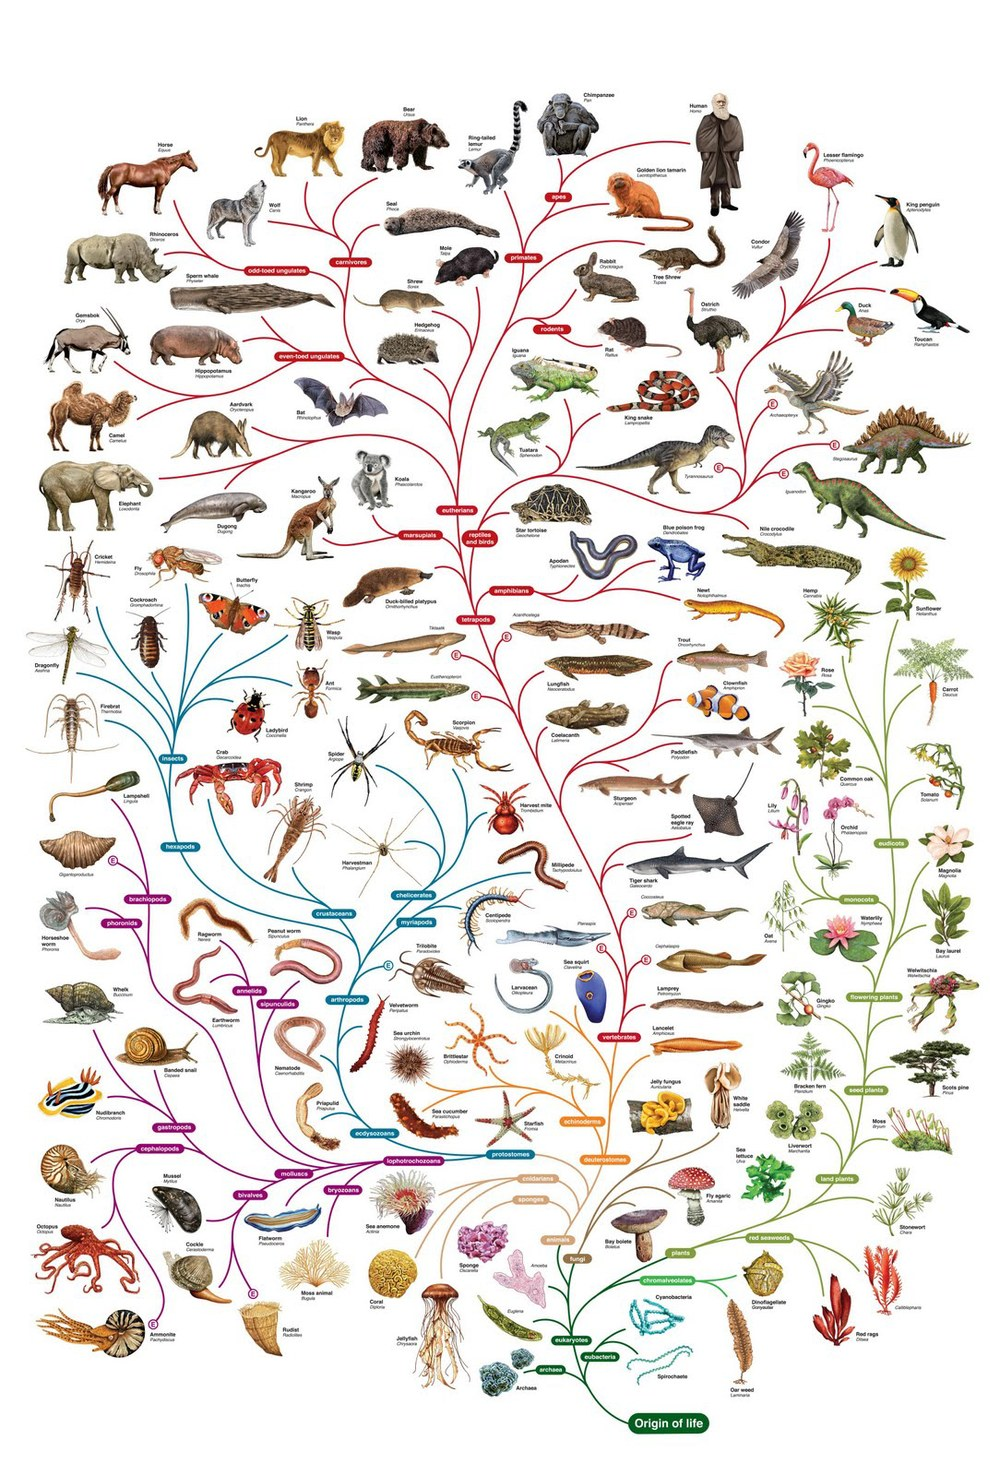 All the ways algae has mutated and evolved in 2.7 billion years...